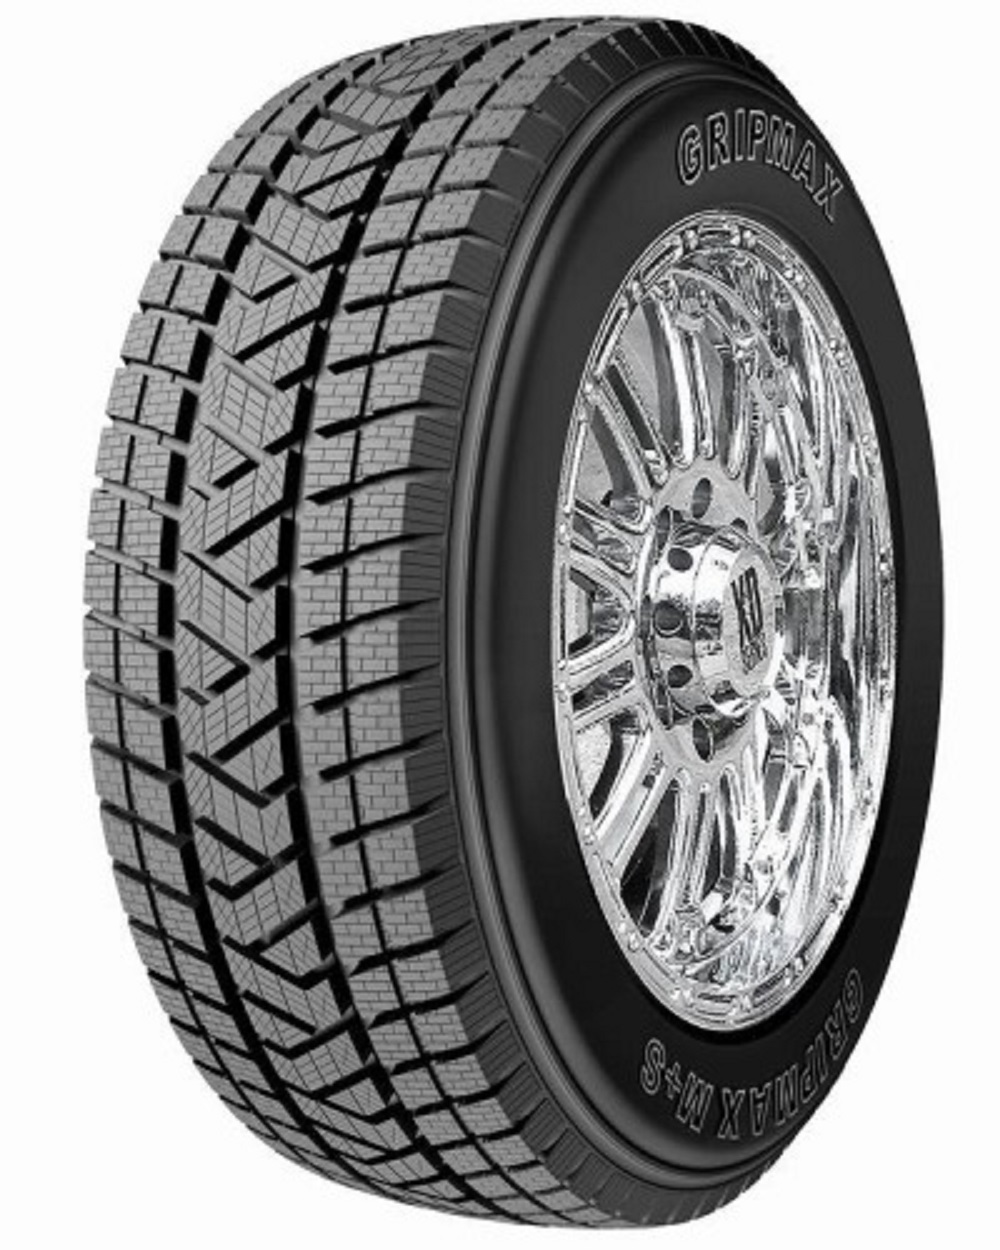 Anvelopa Iarna Gripmax Stature MS XL 275/40R20 106V